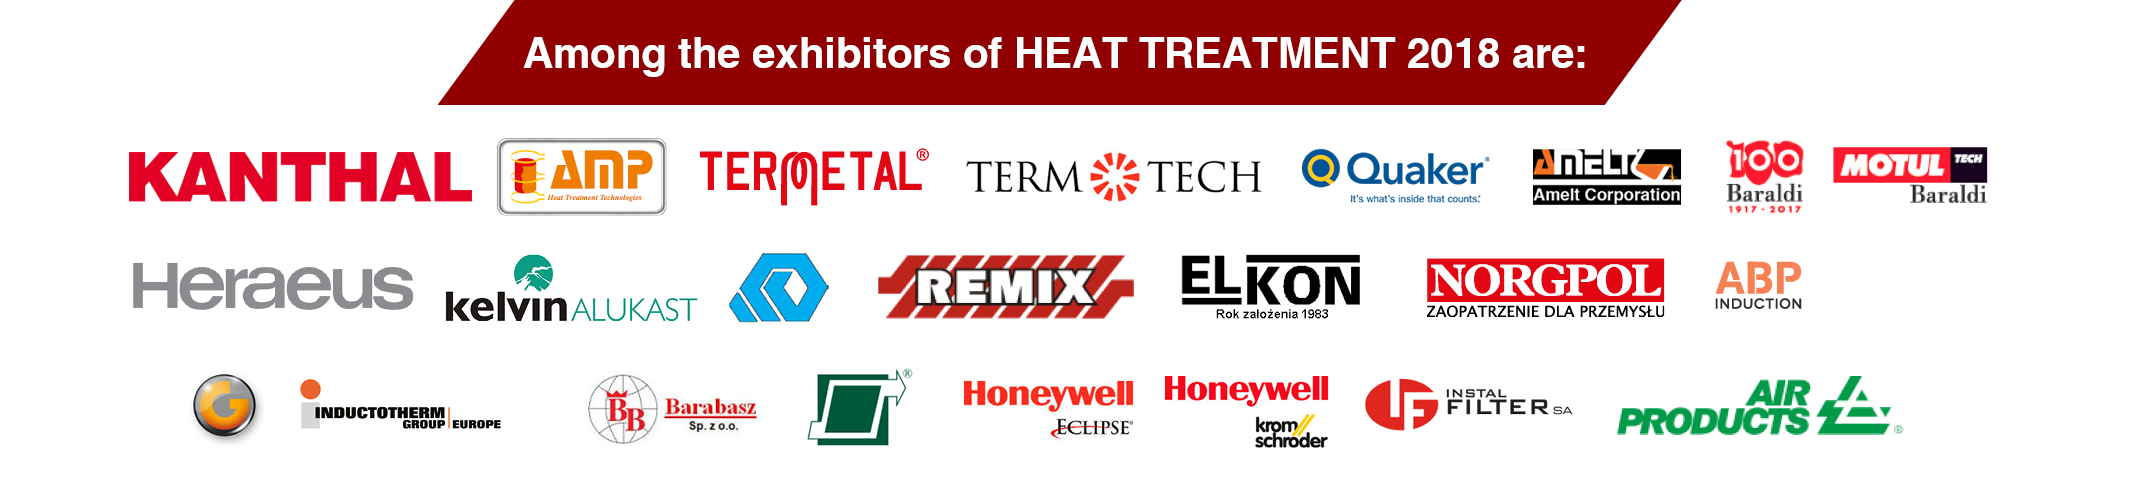 heat treatment 2018 - among the exhibitors